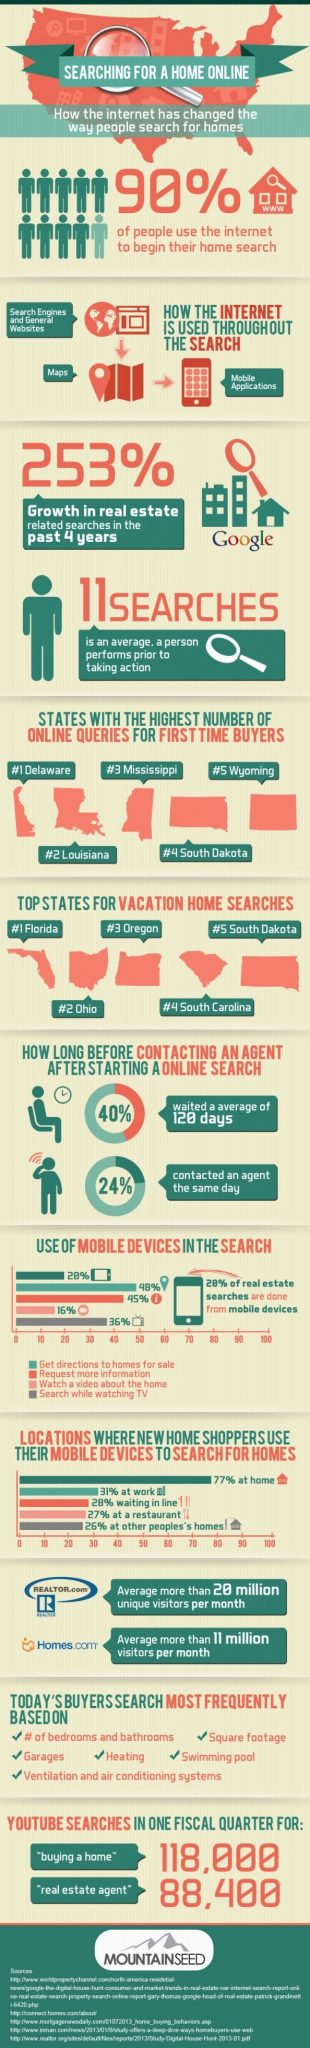 Real Estate Search Traffic Trends